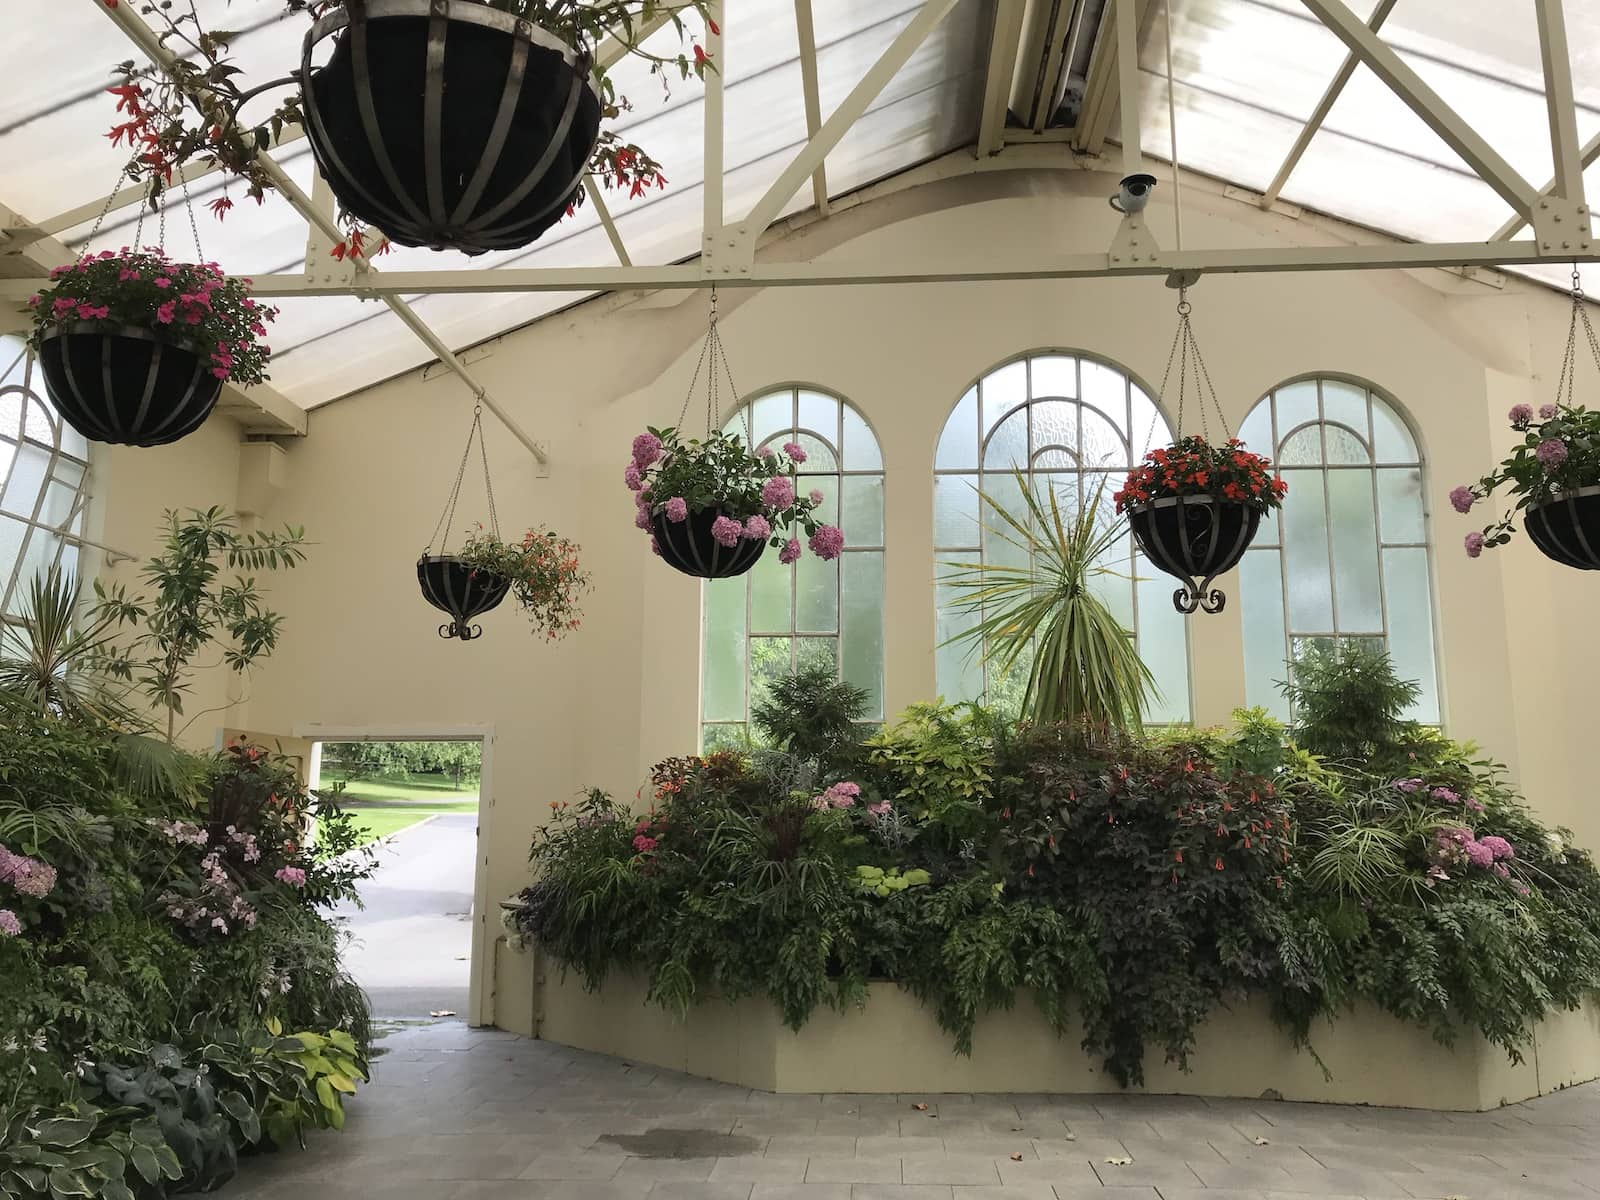 The inside of a conservatory with hanging plants and glass windows